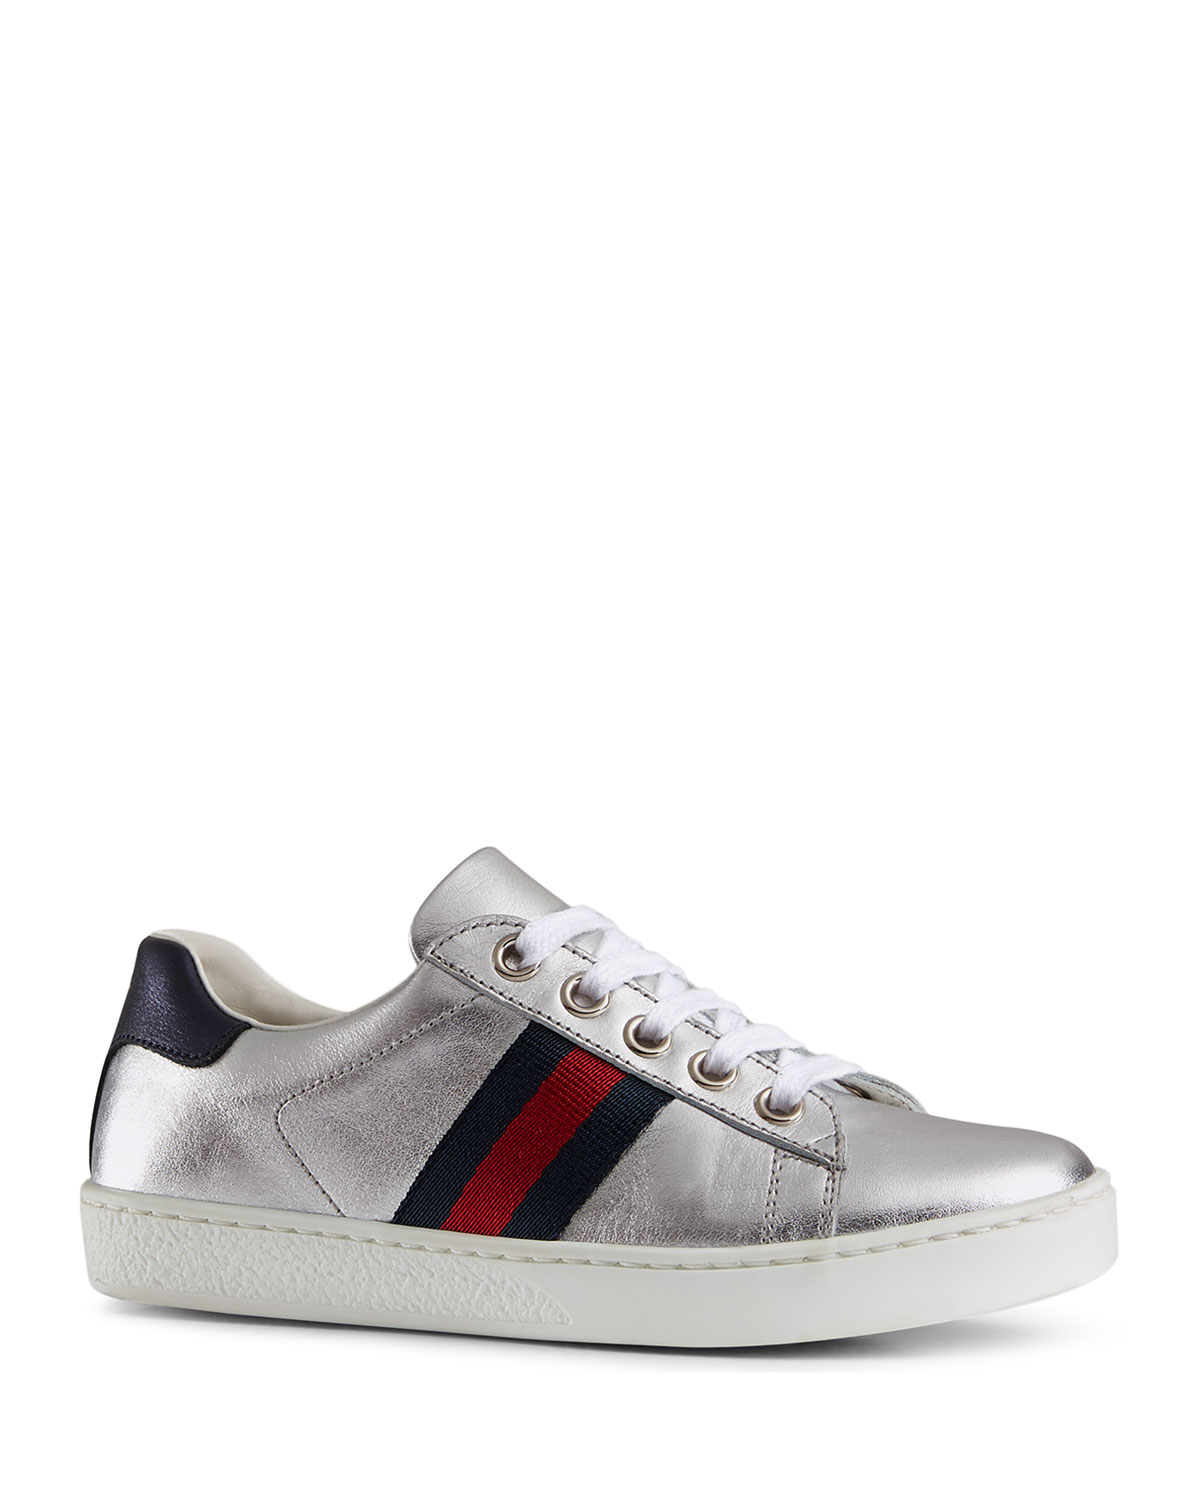 47138e3cfd Gucci New Ace Metallic Leather Web Sneakers, Toddler/Kids | Neiman ...